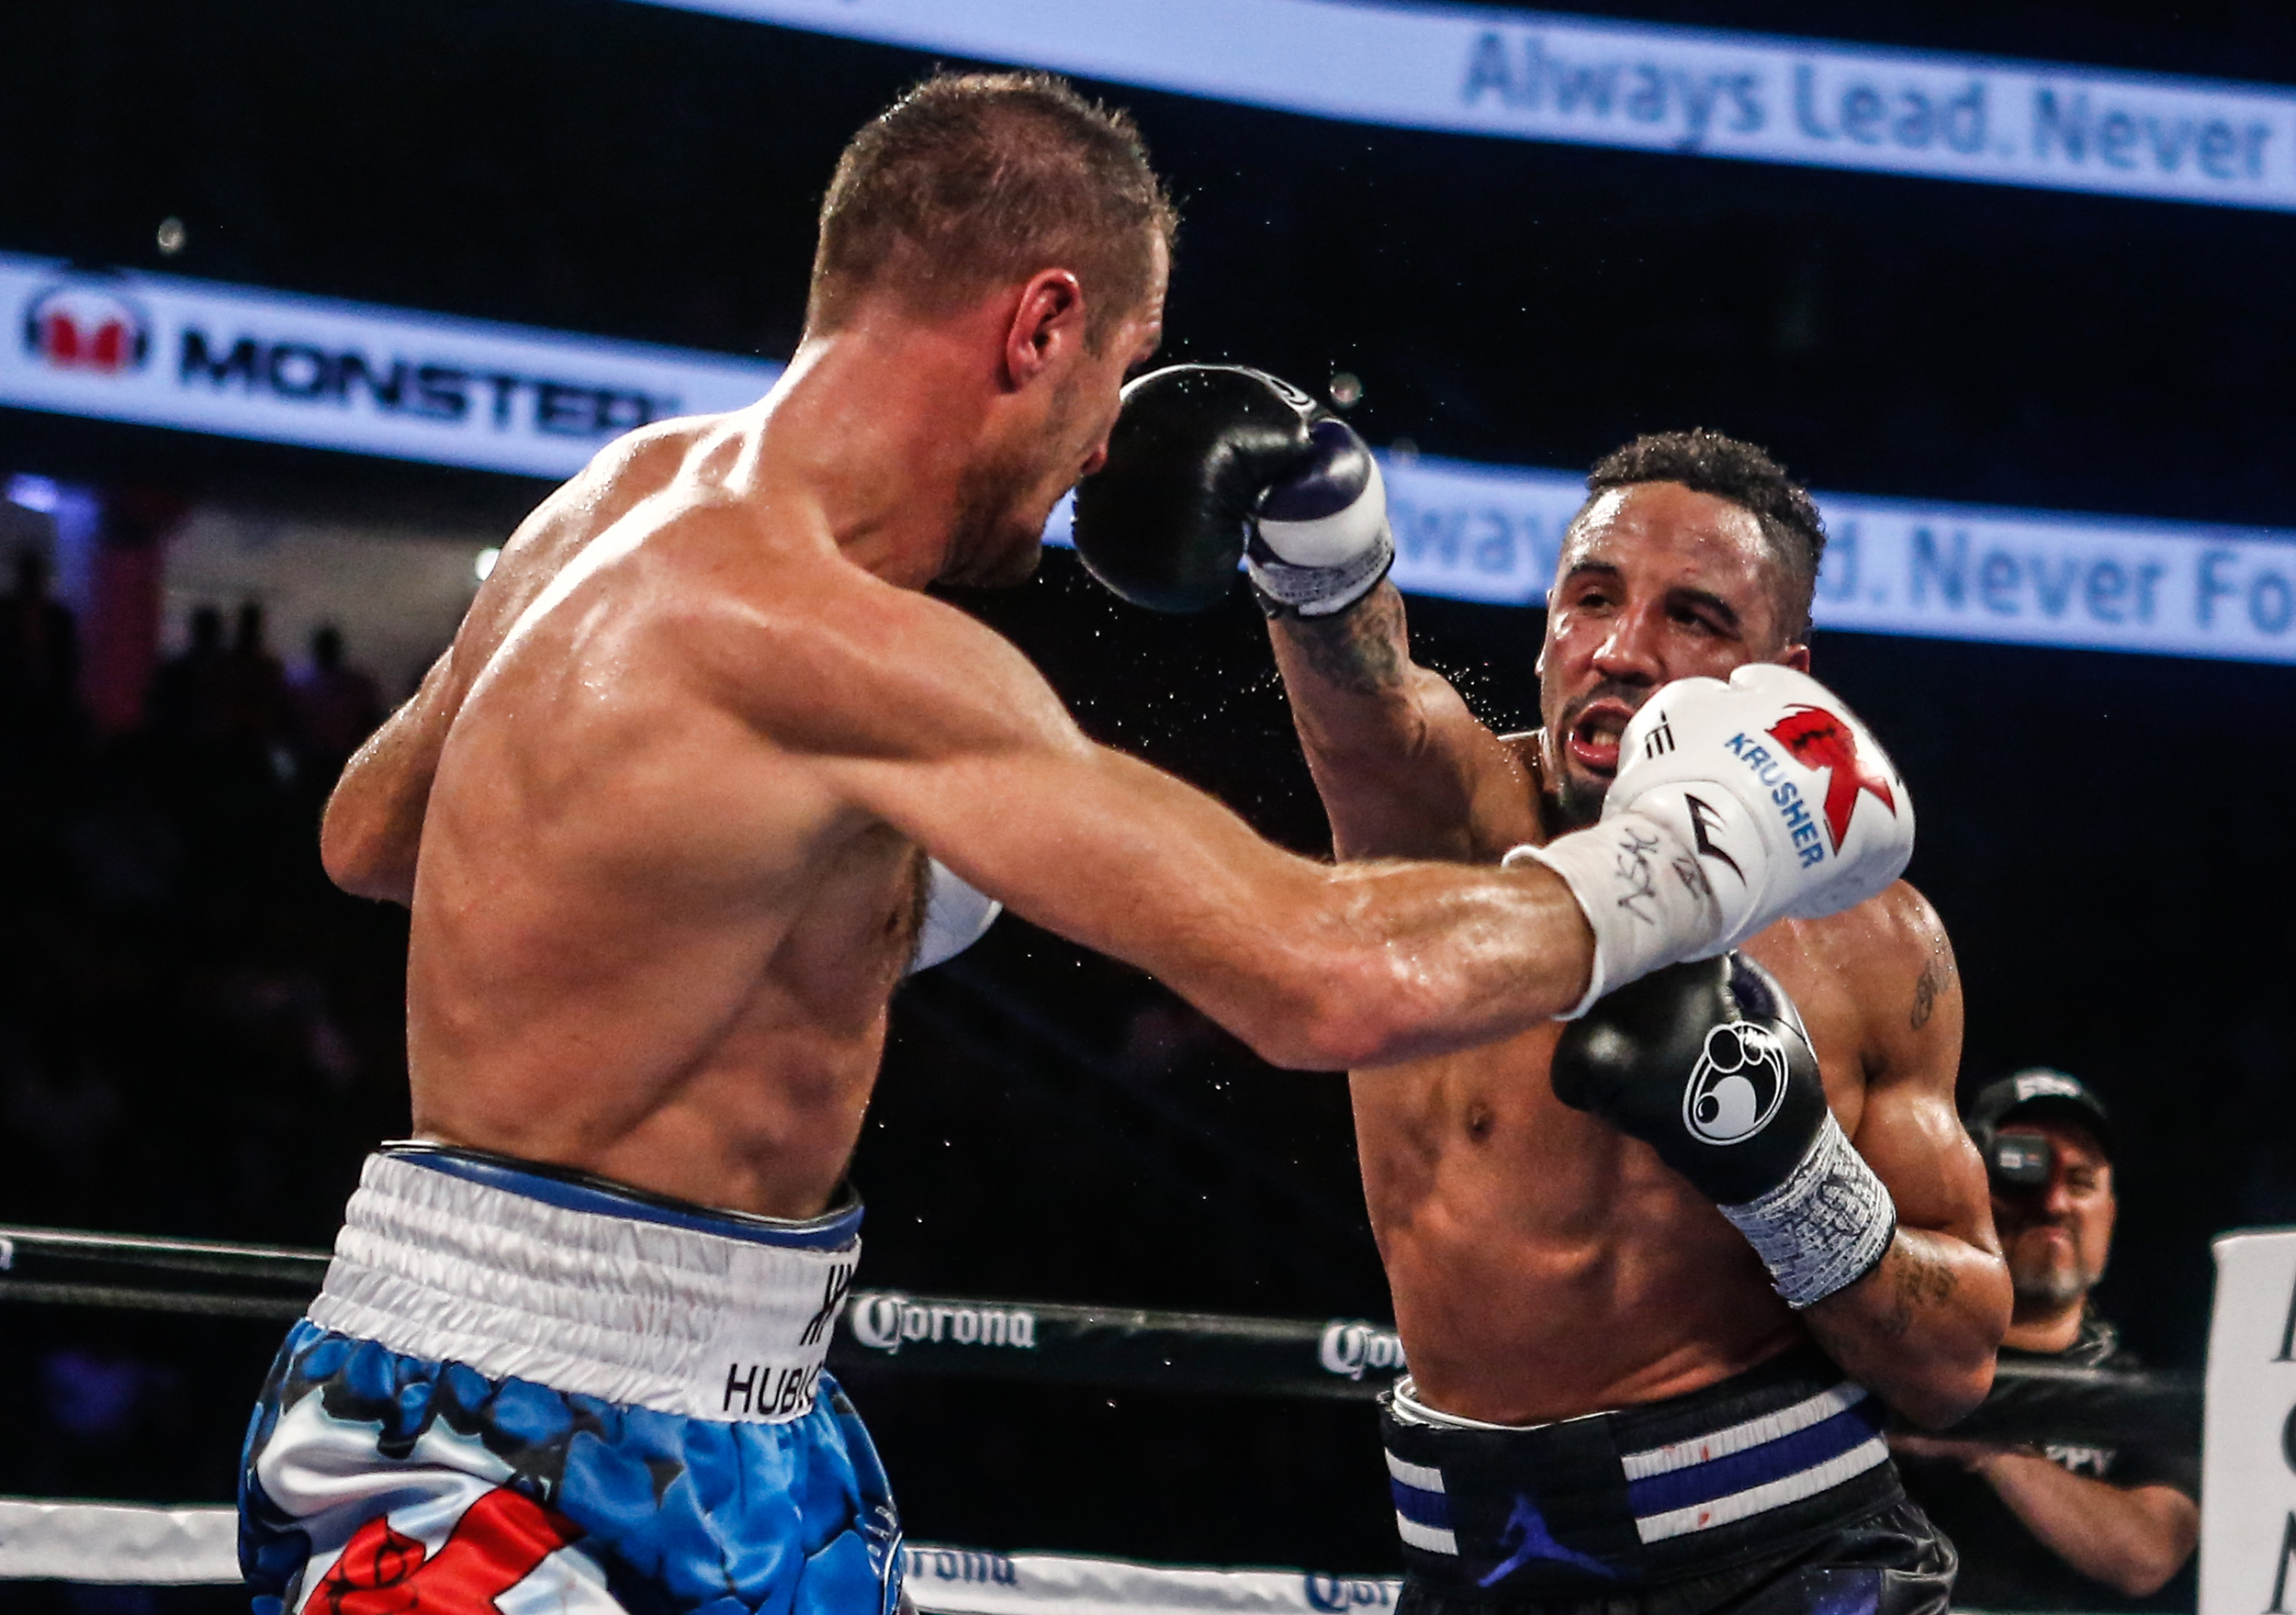 Light Heavyweight boxers Andre Ward( black trunks) and Sergey Kovalev(blue trunks) fights for the WBA/WBO/IBF world light heavyweight championship in a twelve-round bout on November 19th at the T-Mobile Arena in Las Vegas.